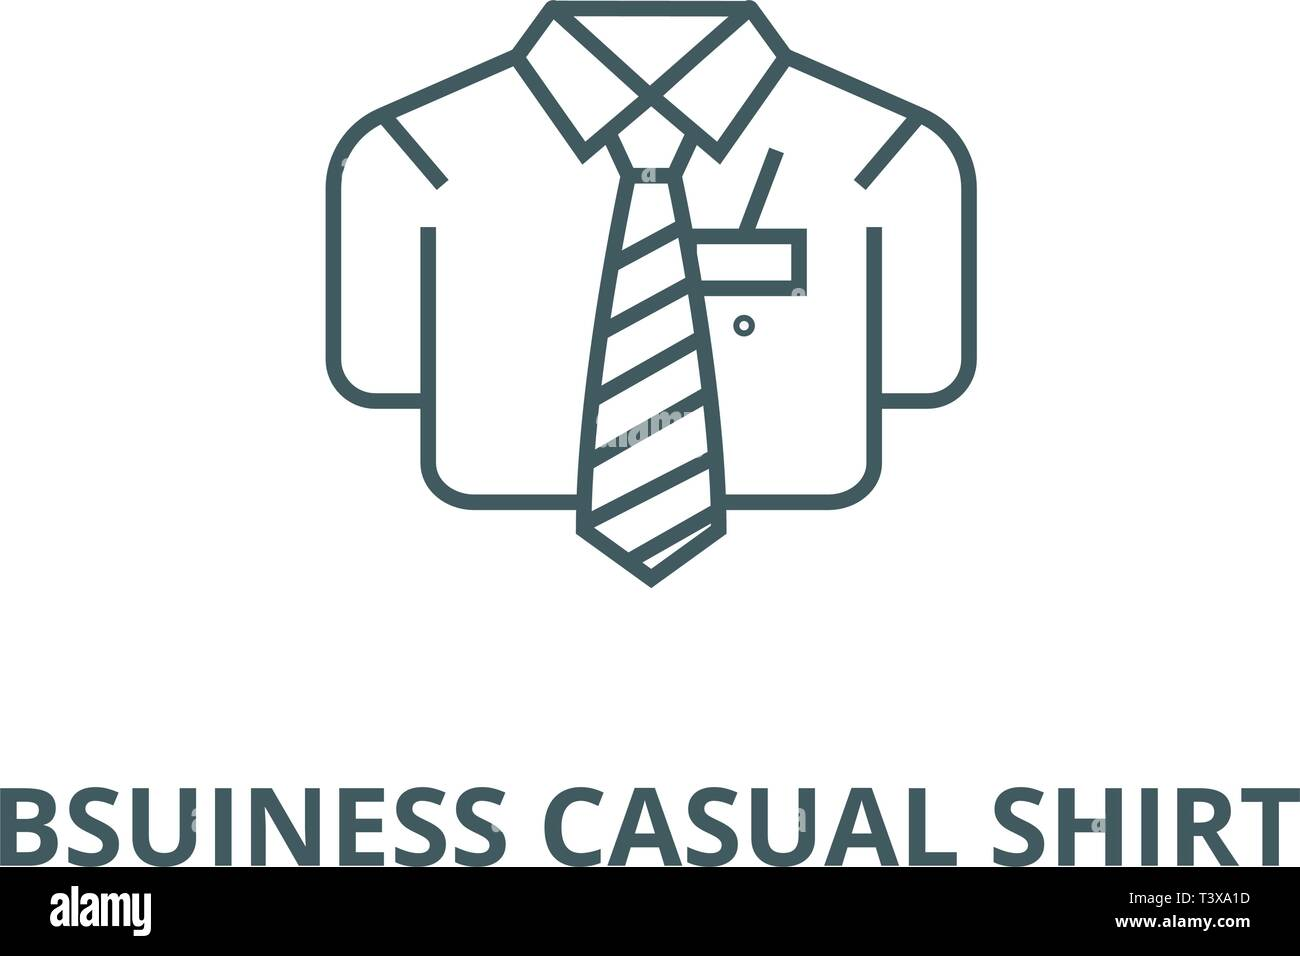 Bsuiness casual shirt line icon, vector. Bsuiness casual shirt outline sign, concept symbol, flat illustration - Stock Vector